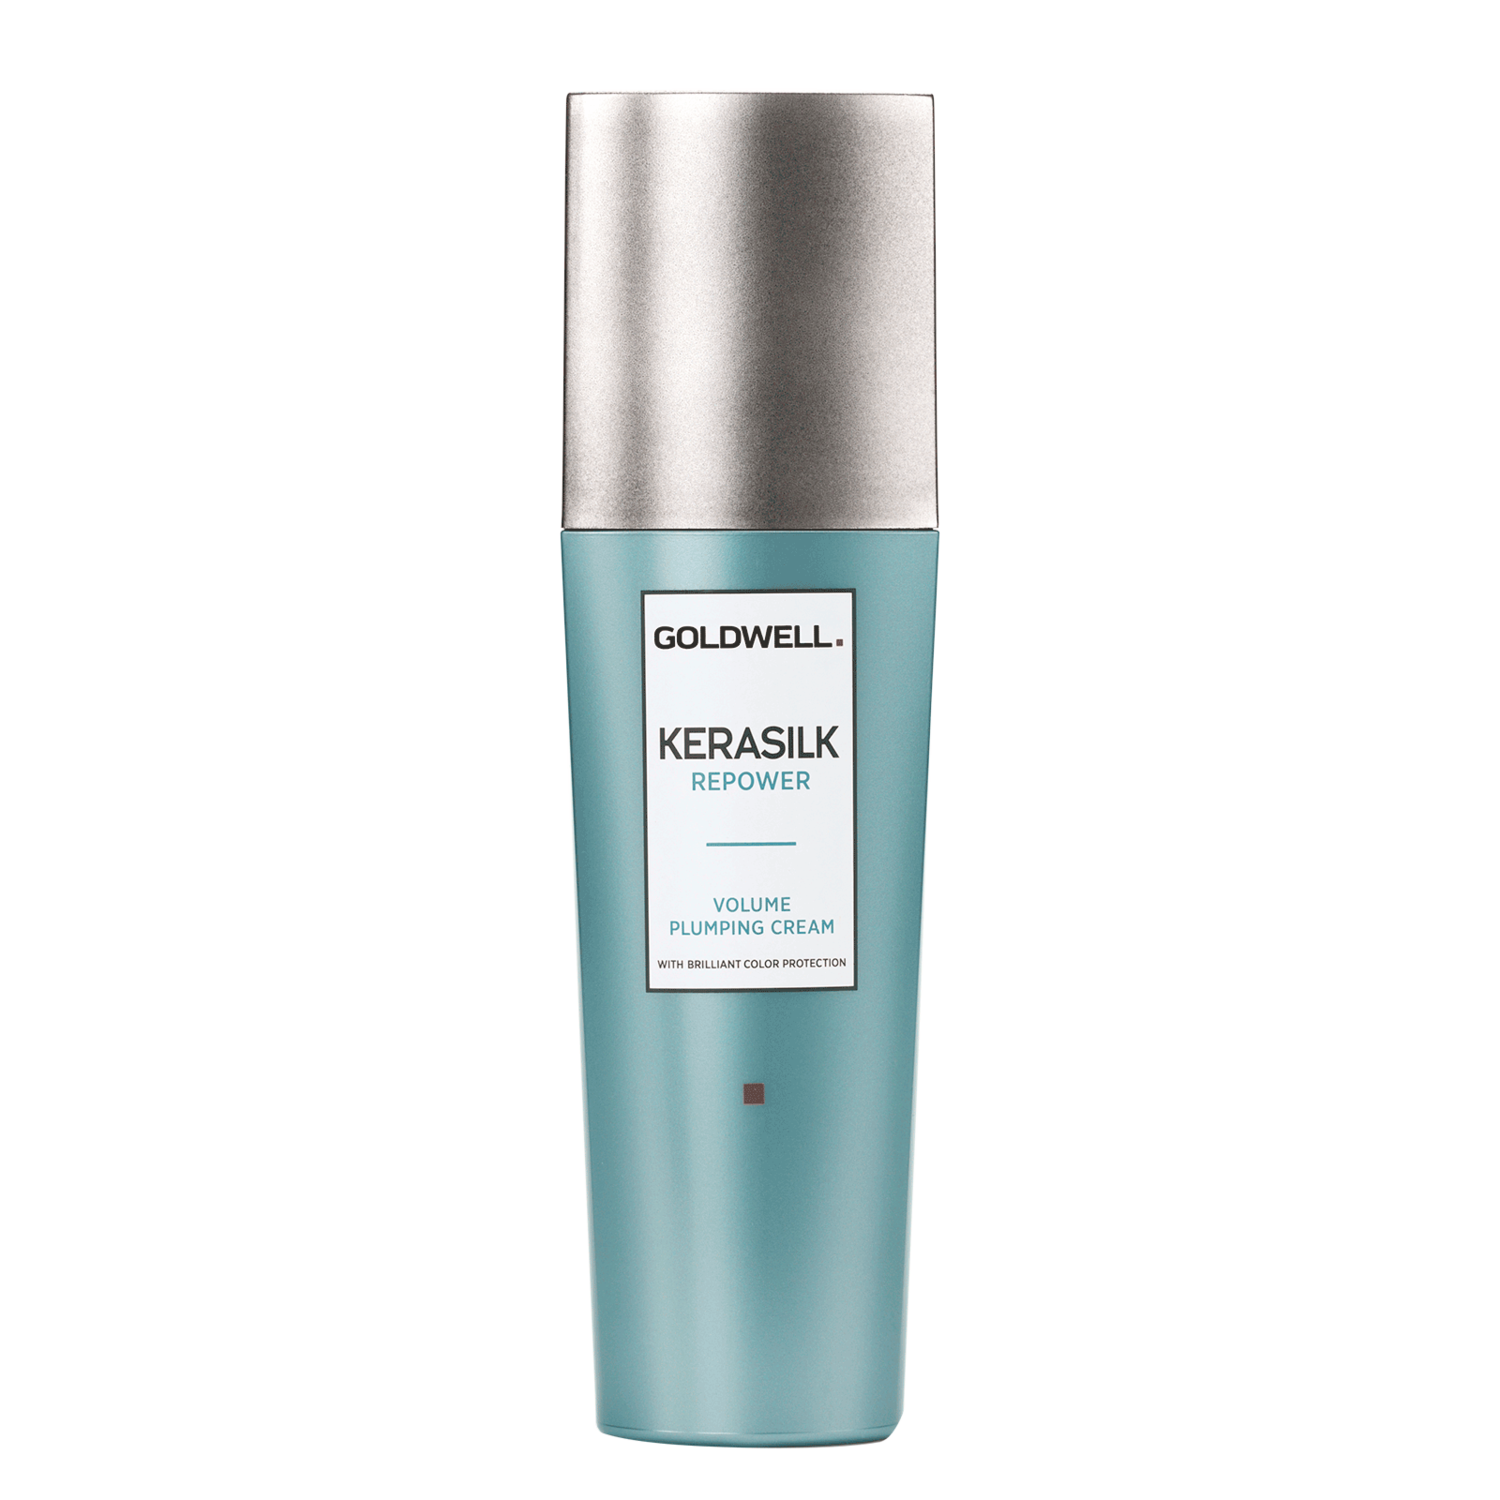 Goldwell Kerasilk Re Power Volume Plumping Cream 75 ml